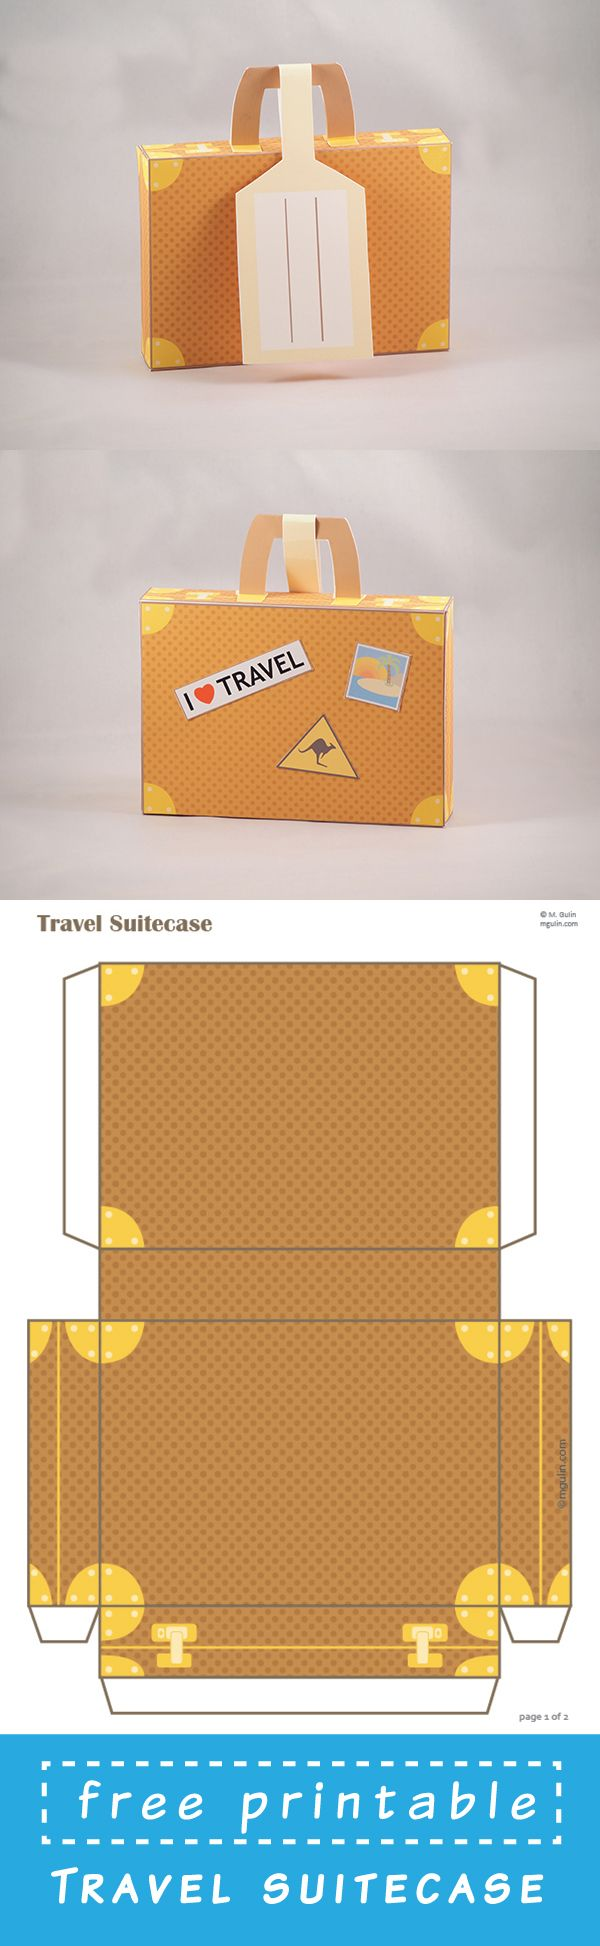 Printable suitcase gift card. Click on link for free printable. http://www.mgulin.com/wordpress/2014/09/prinatble-suitcase/